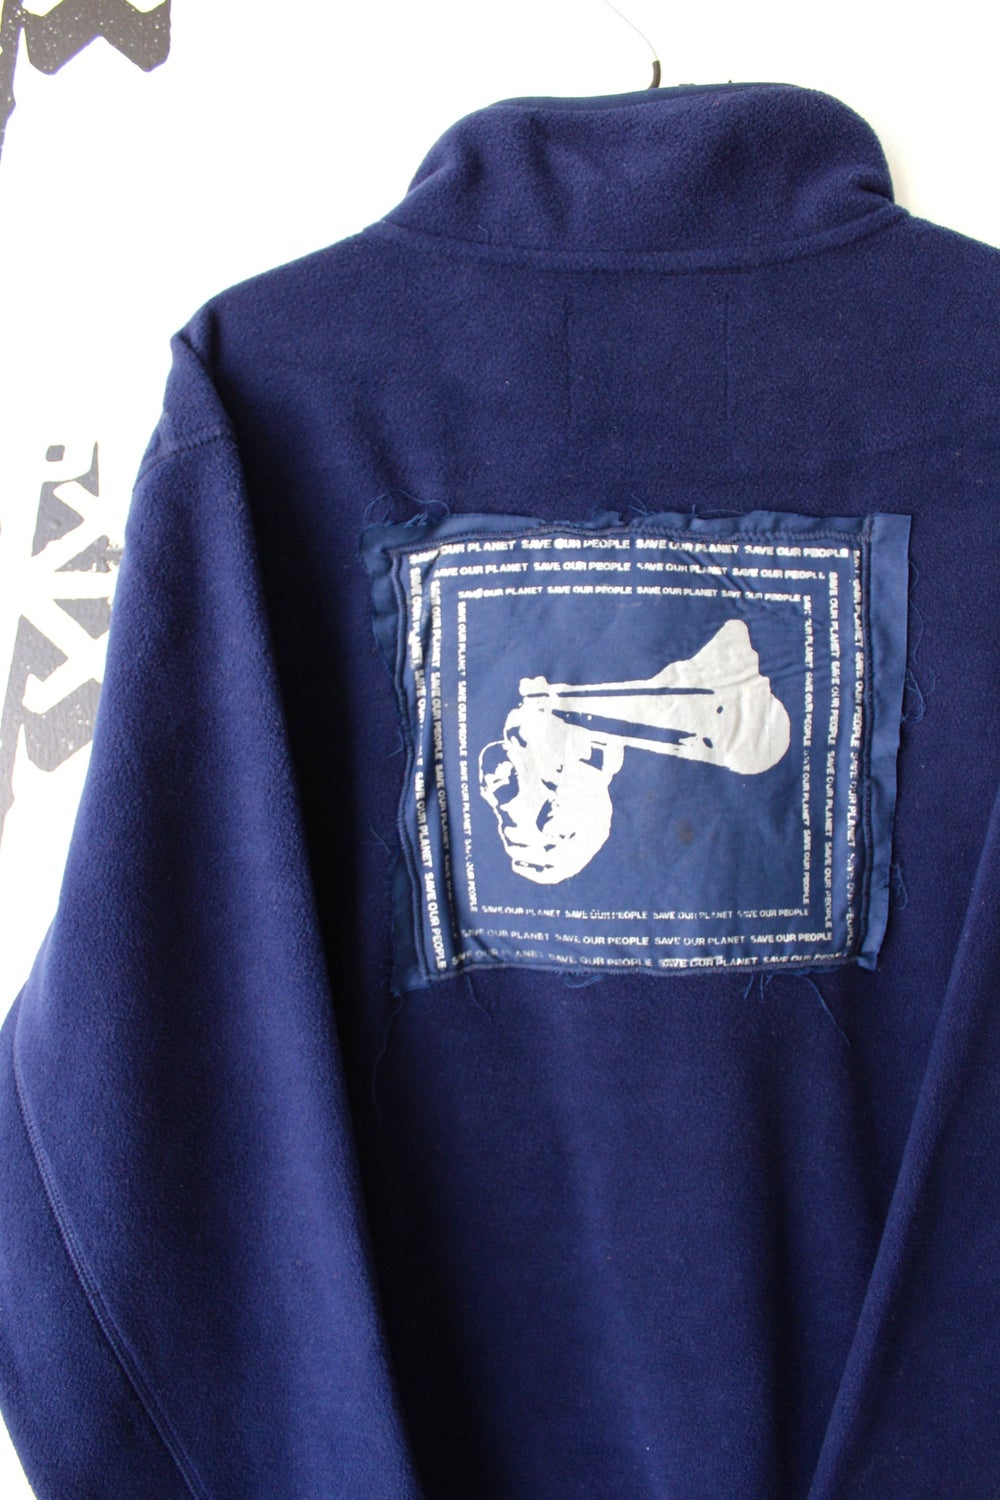 save up pull over sweater in navy